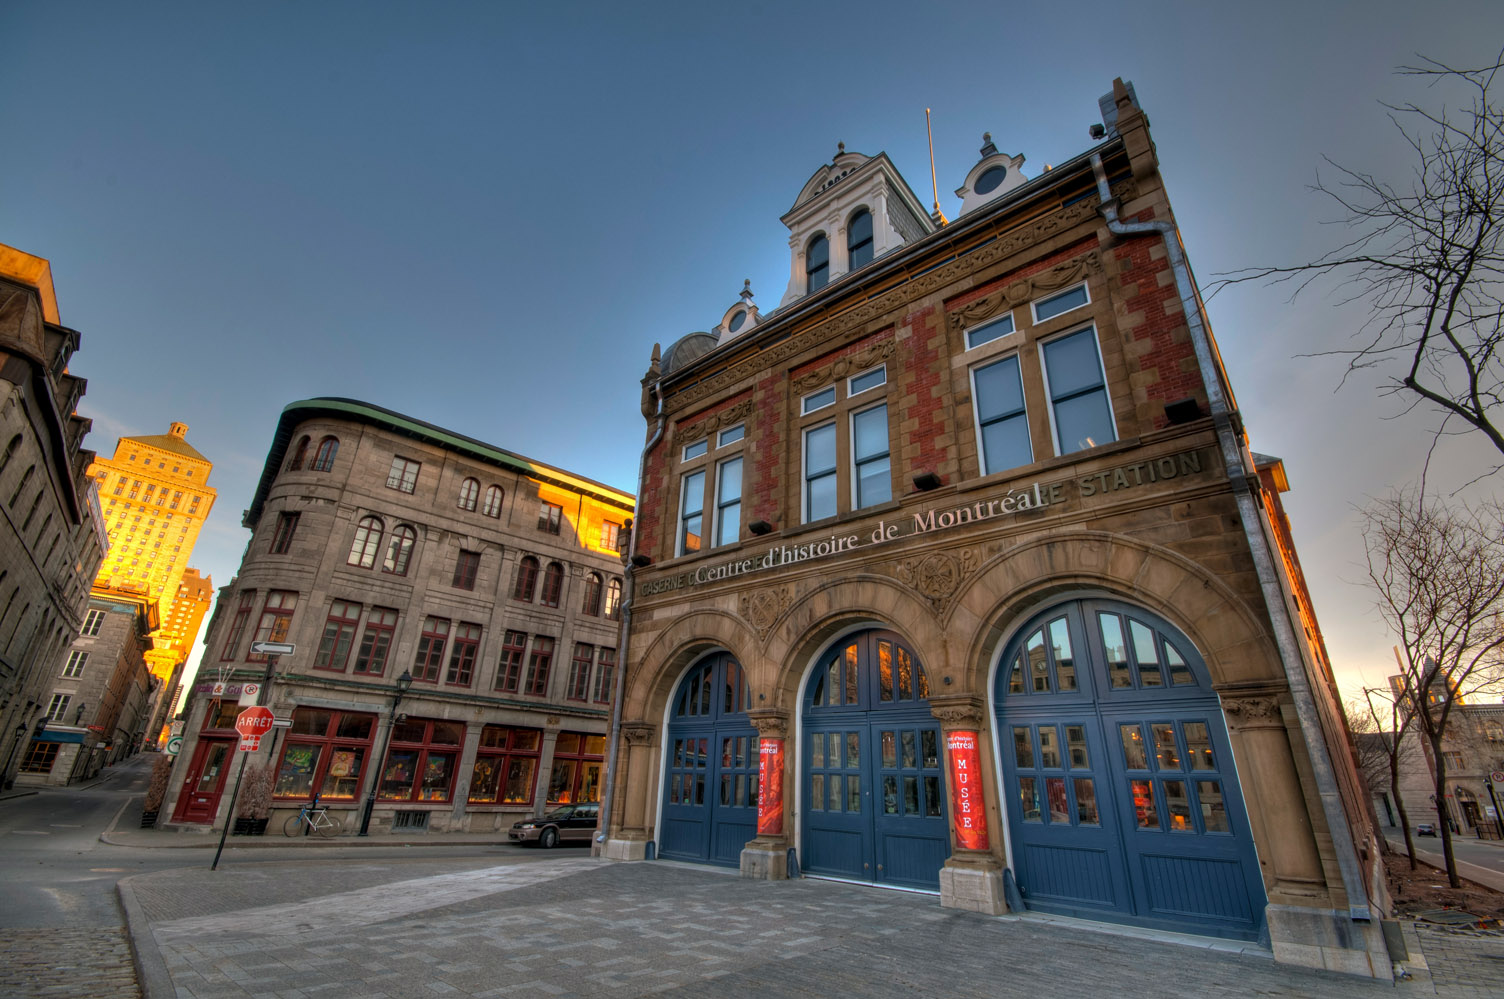 Old fire station, Montreal